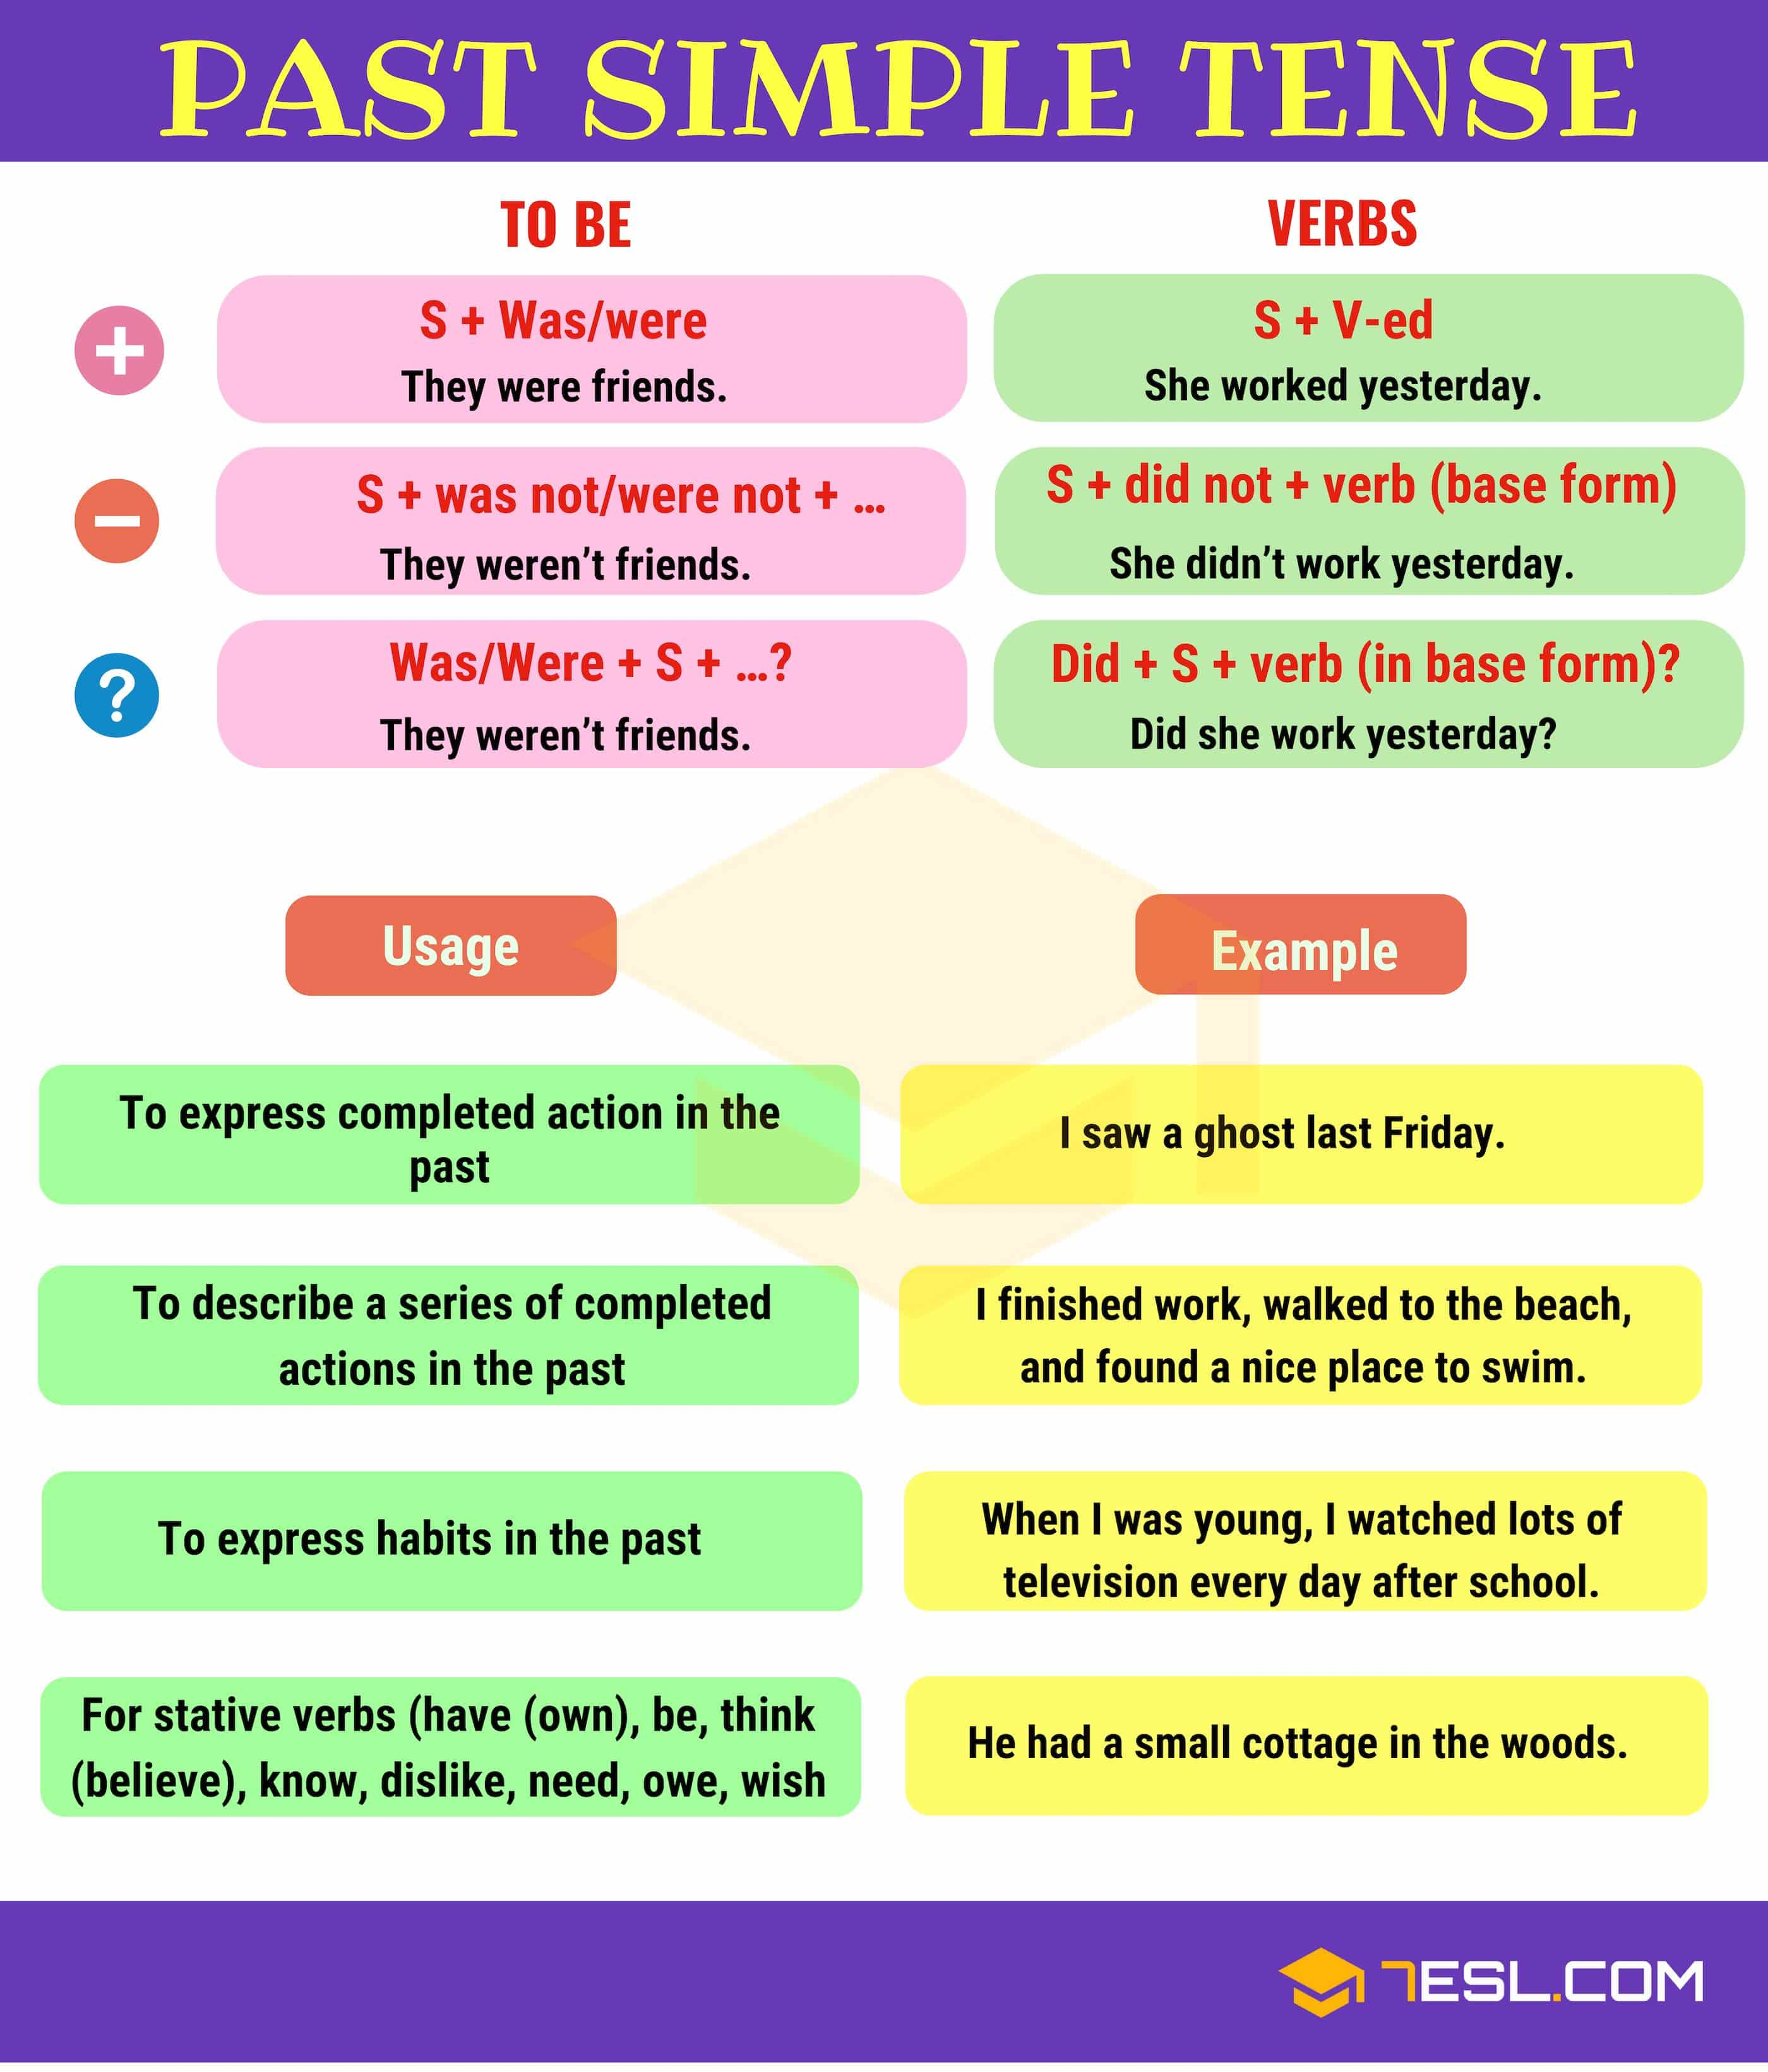 Past Simple Tense! Learn useful grammar rules to use the Simple Past Tense in English with example sentences and ESL printable worksheets.